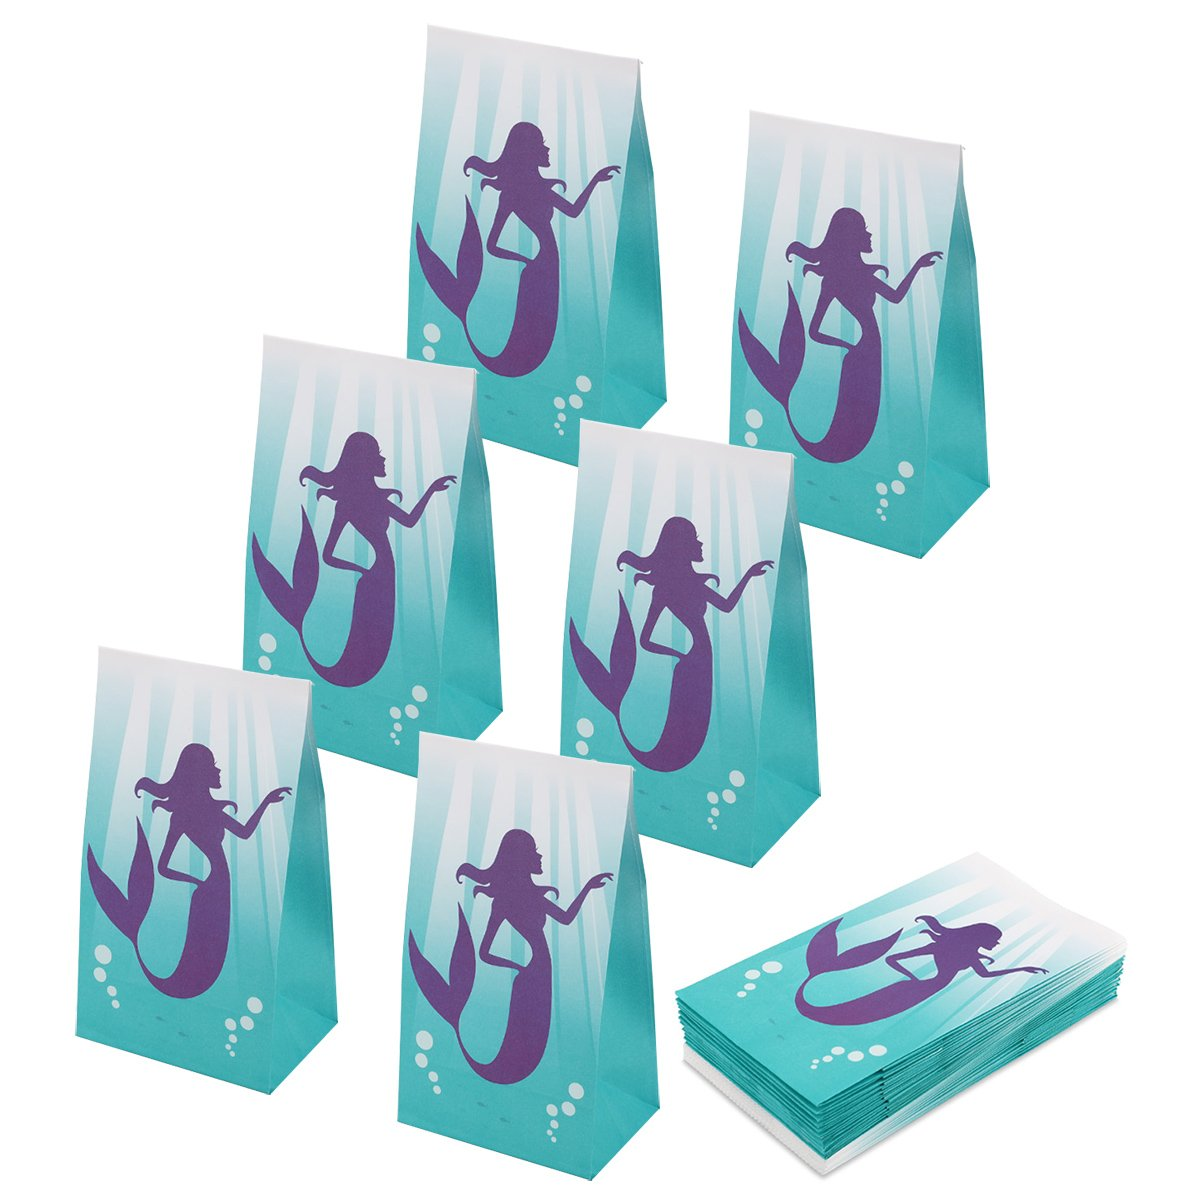 RecooTic Mermaid Party Bags Goodie bags for Kids Mermaid Themed Party, Pack of 24 by RecooTic